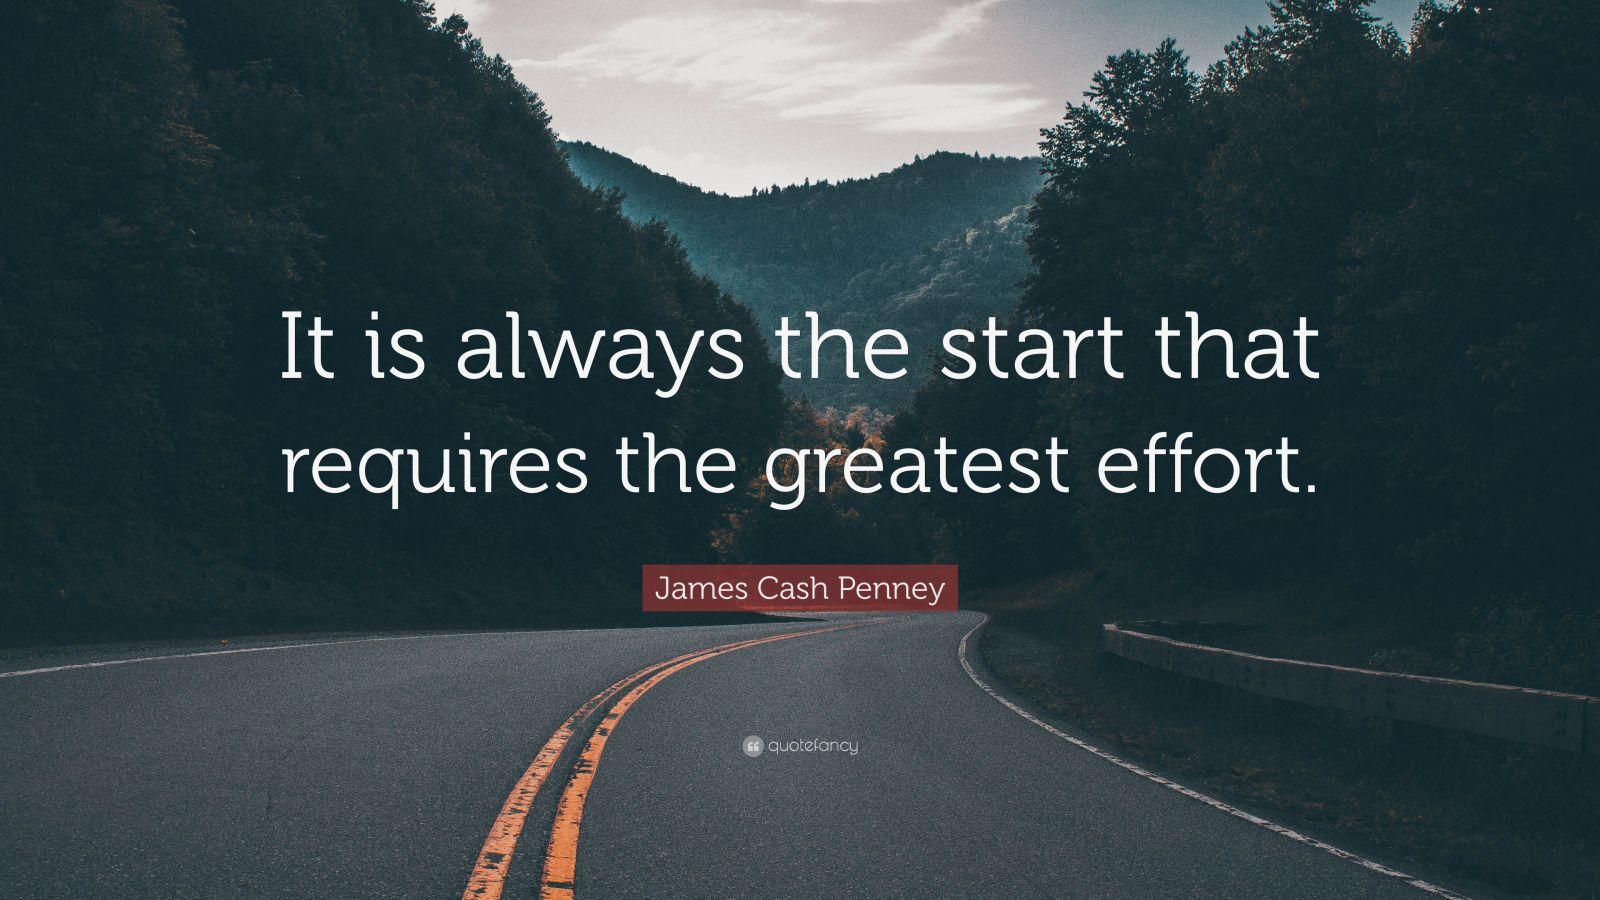 """James Cash Penney Quote: """"It is always the start that requires the greatest effort."""""""